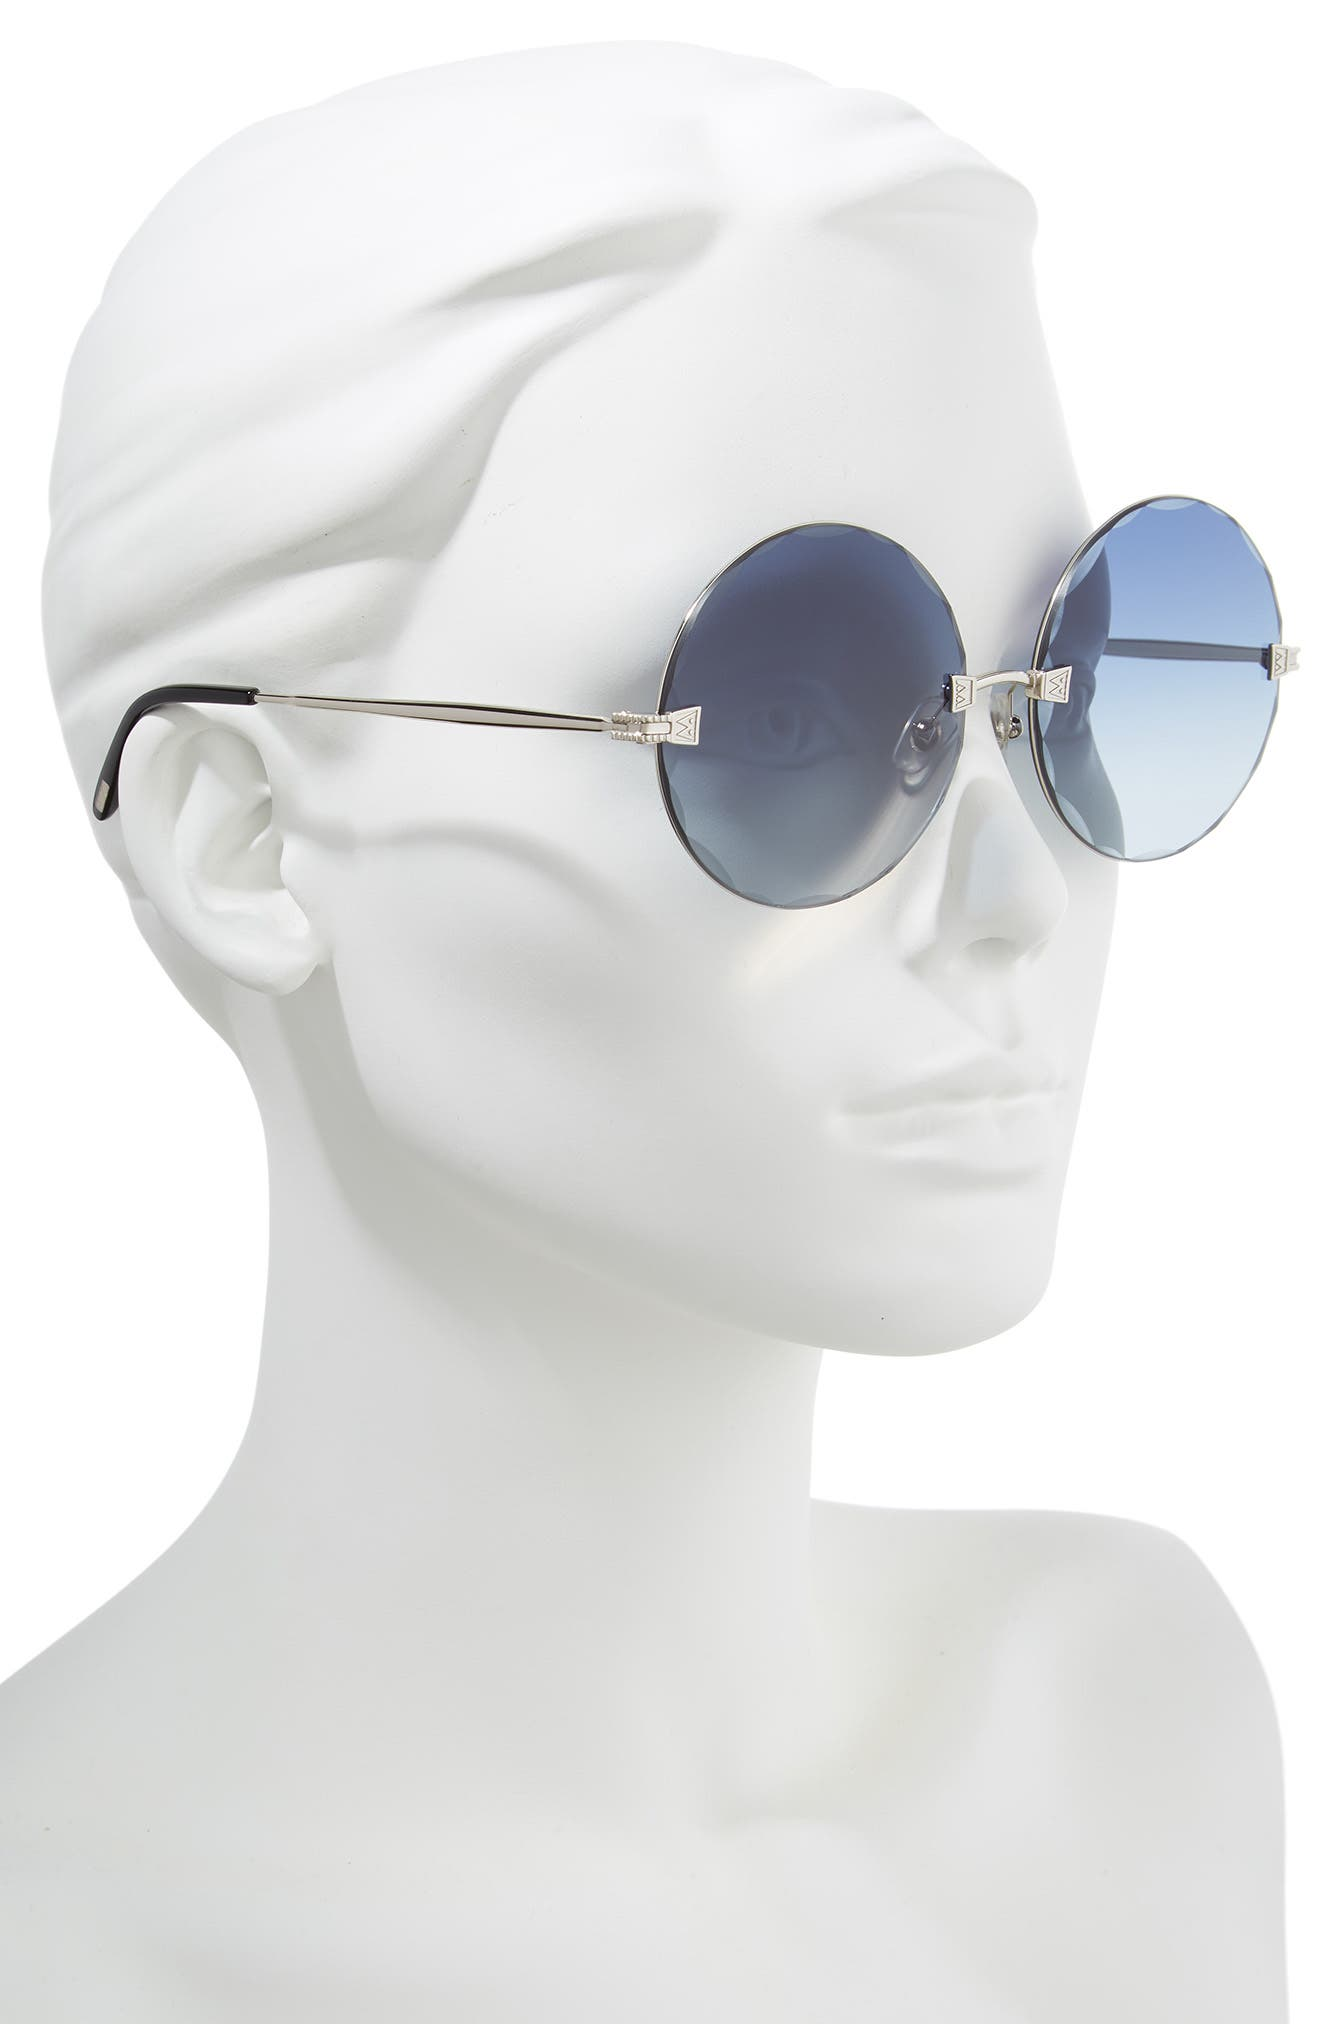 Starlight 62mm Oversize Round Sunglasses,                             Alternate thumbnail 2, color,                             040